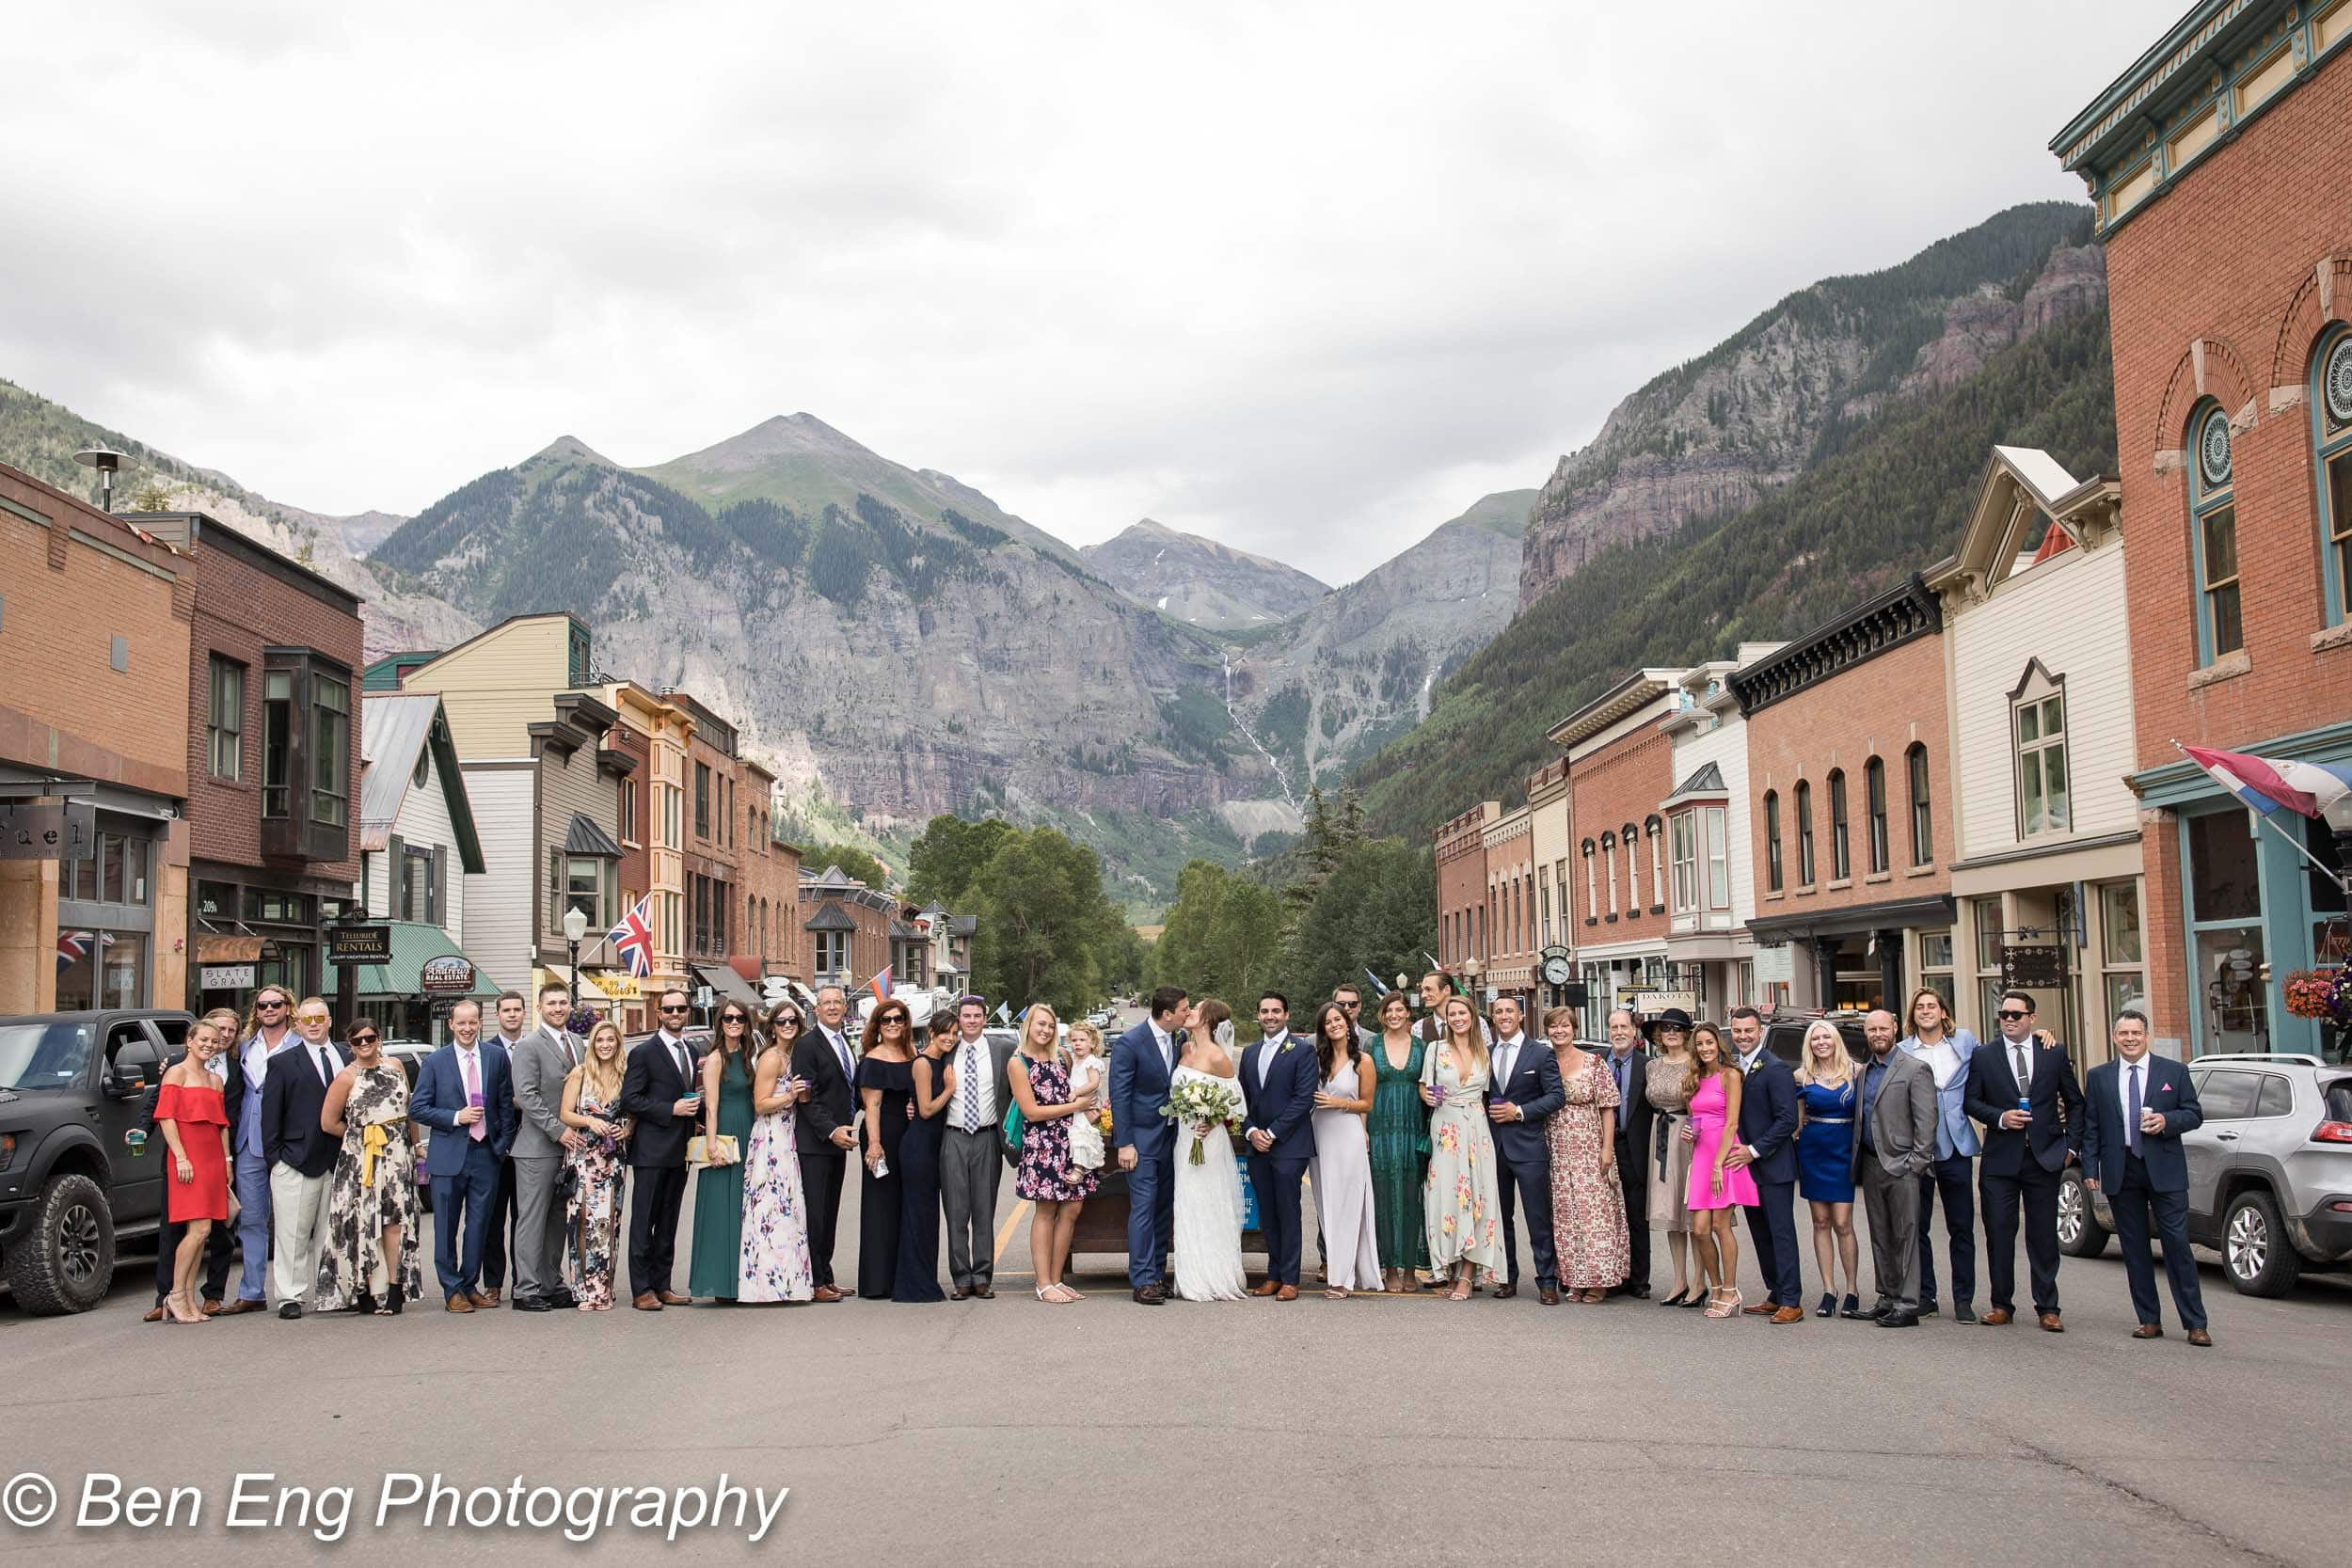 Jack and Erika's destination wedding at St Patrick's and Gorrono in Telluride, Colorado